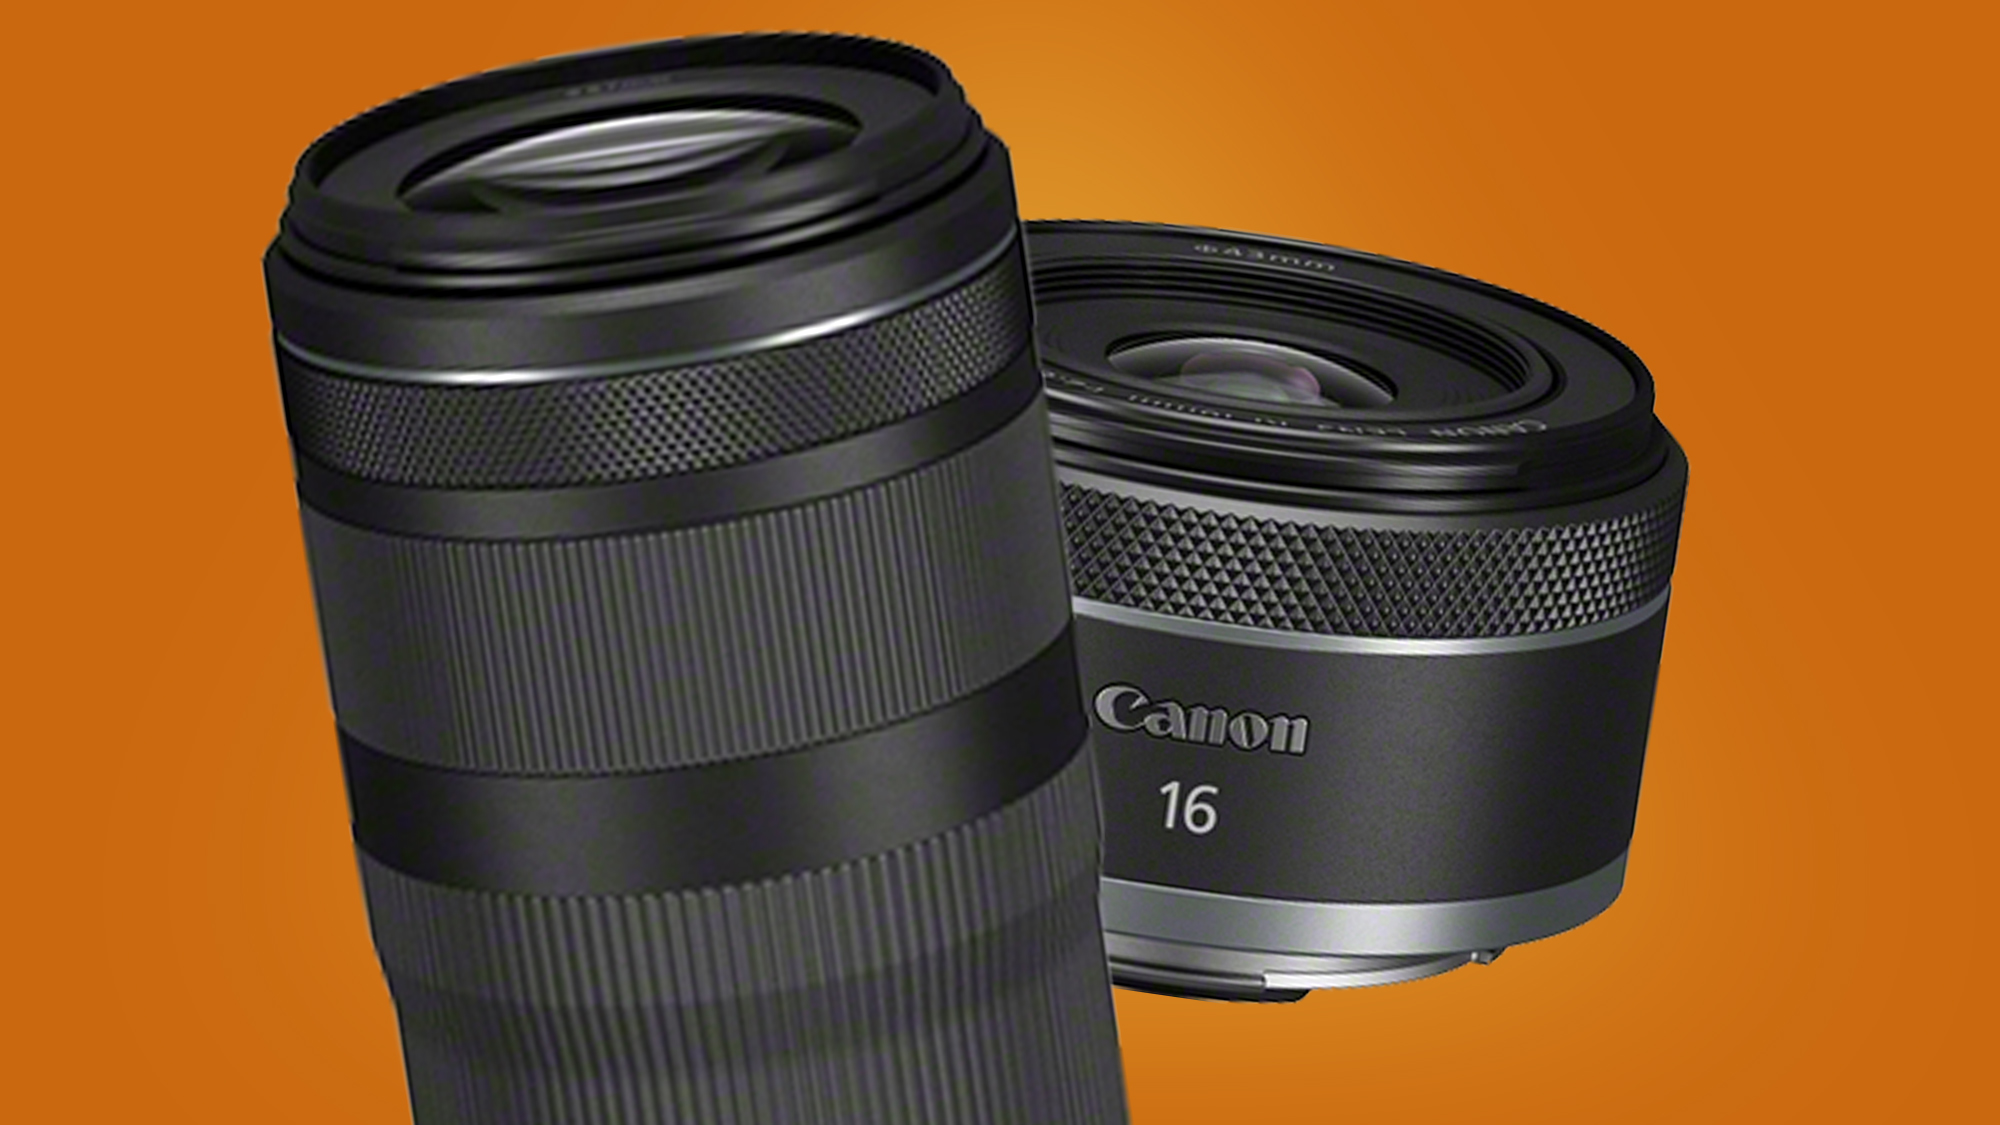 Canon's super-affordable new RF lenses will be popular for different reasons